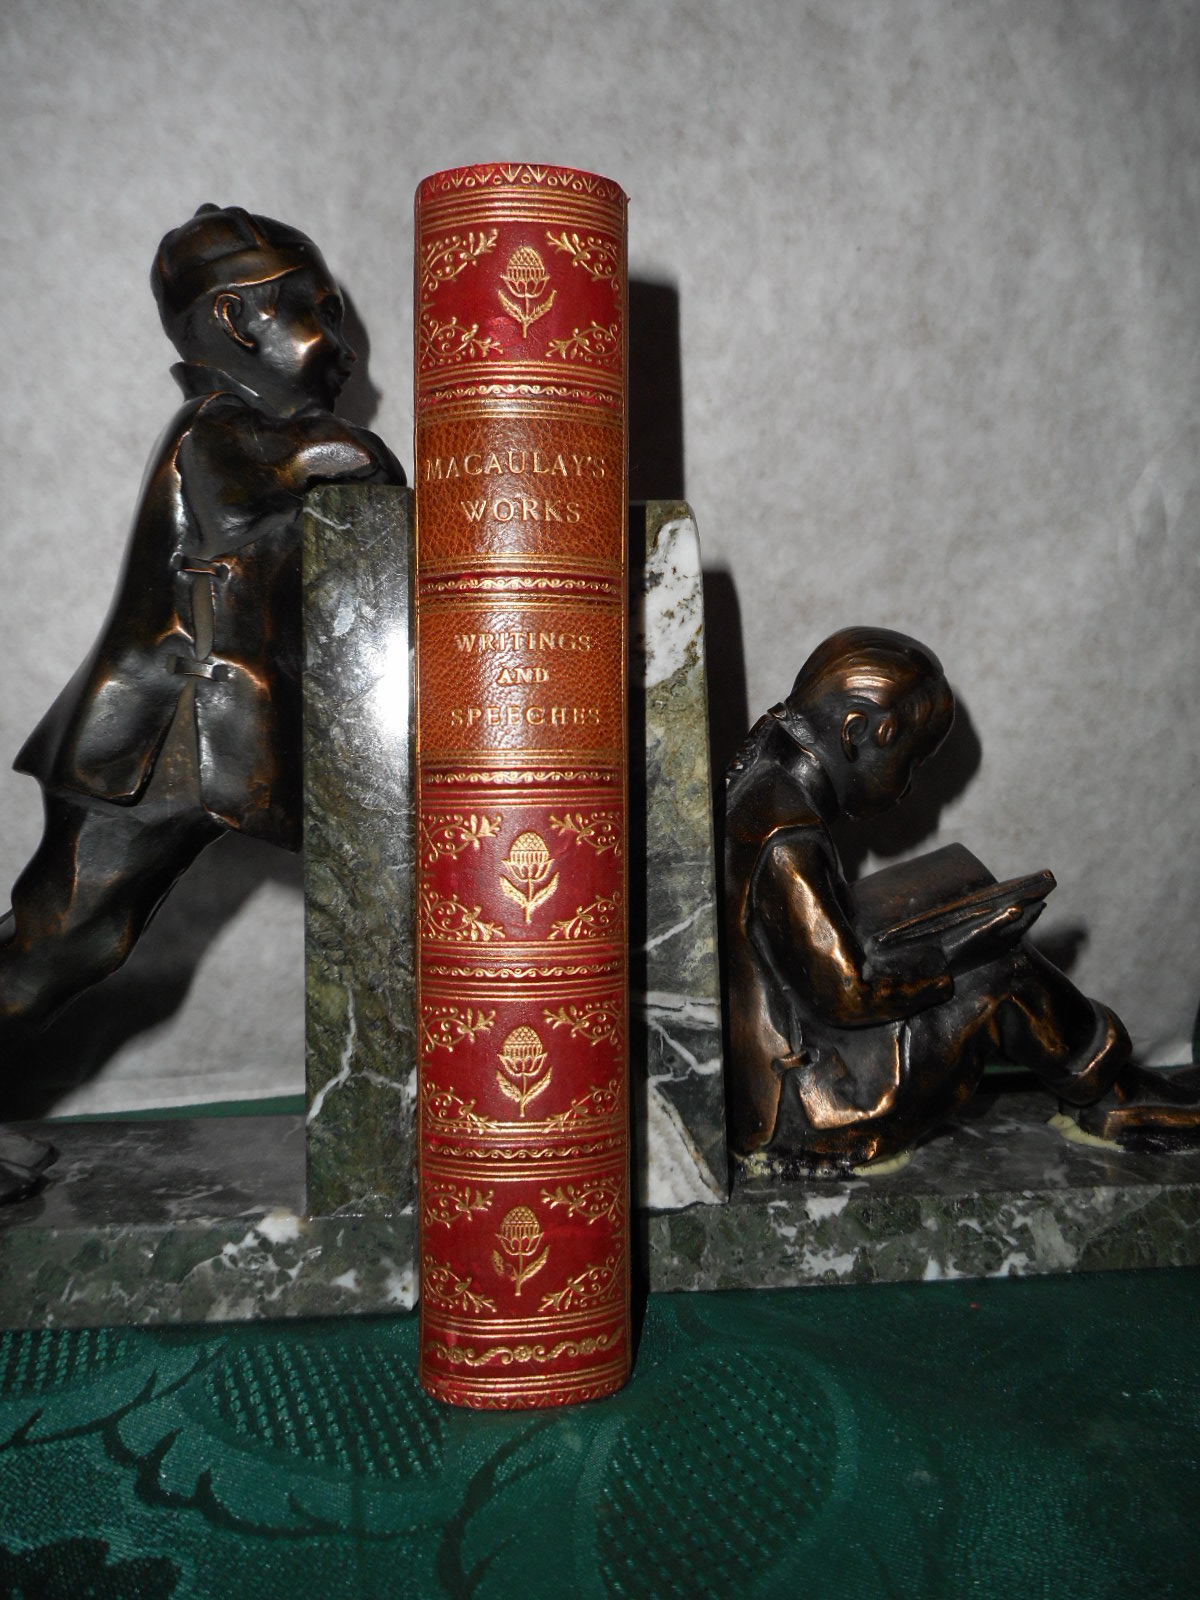 Image for The Miscellaneous Writings and Speeches of Lord Macaulay.  Popular Edition (Original Leather Binding)